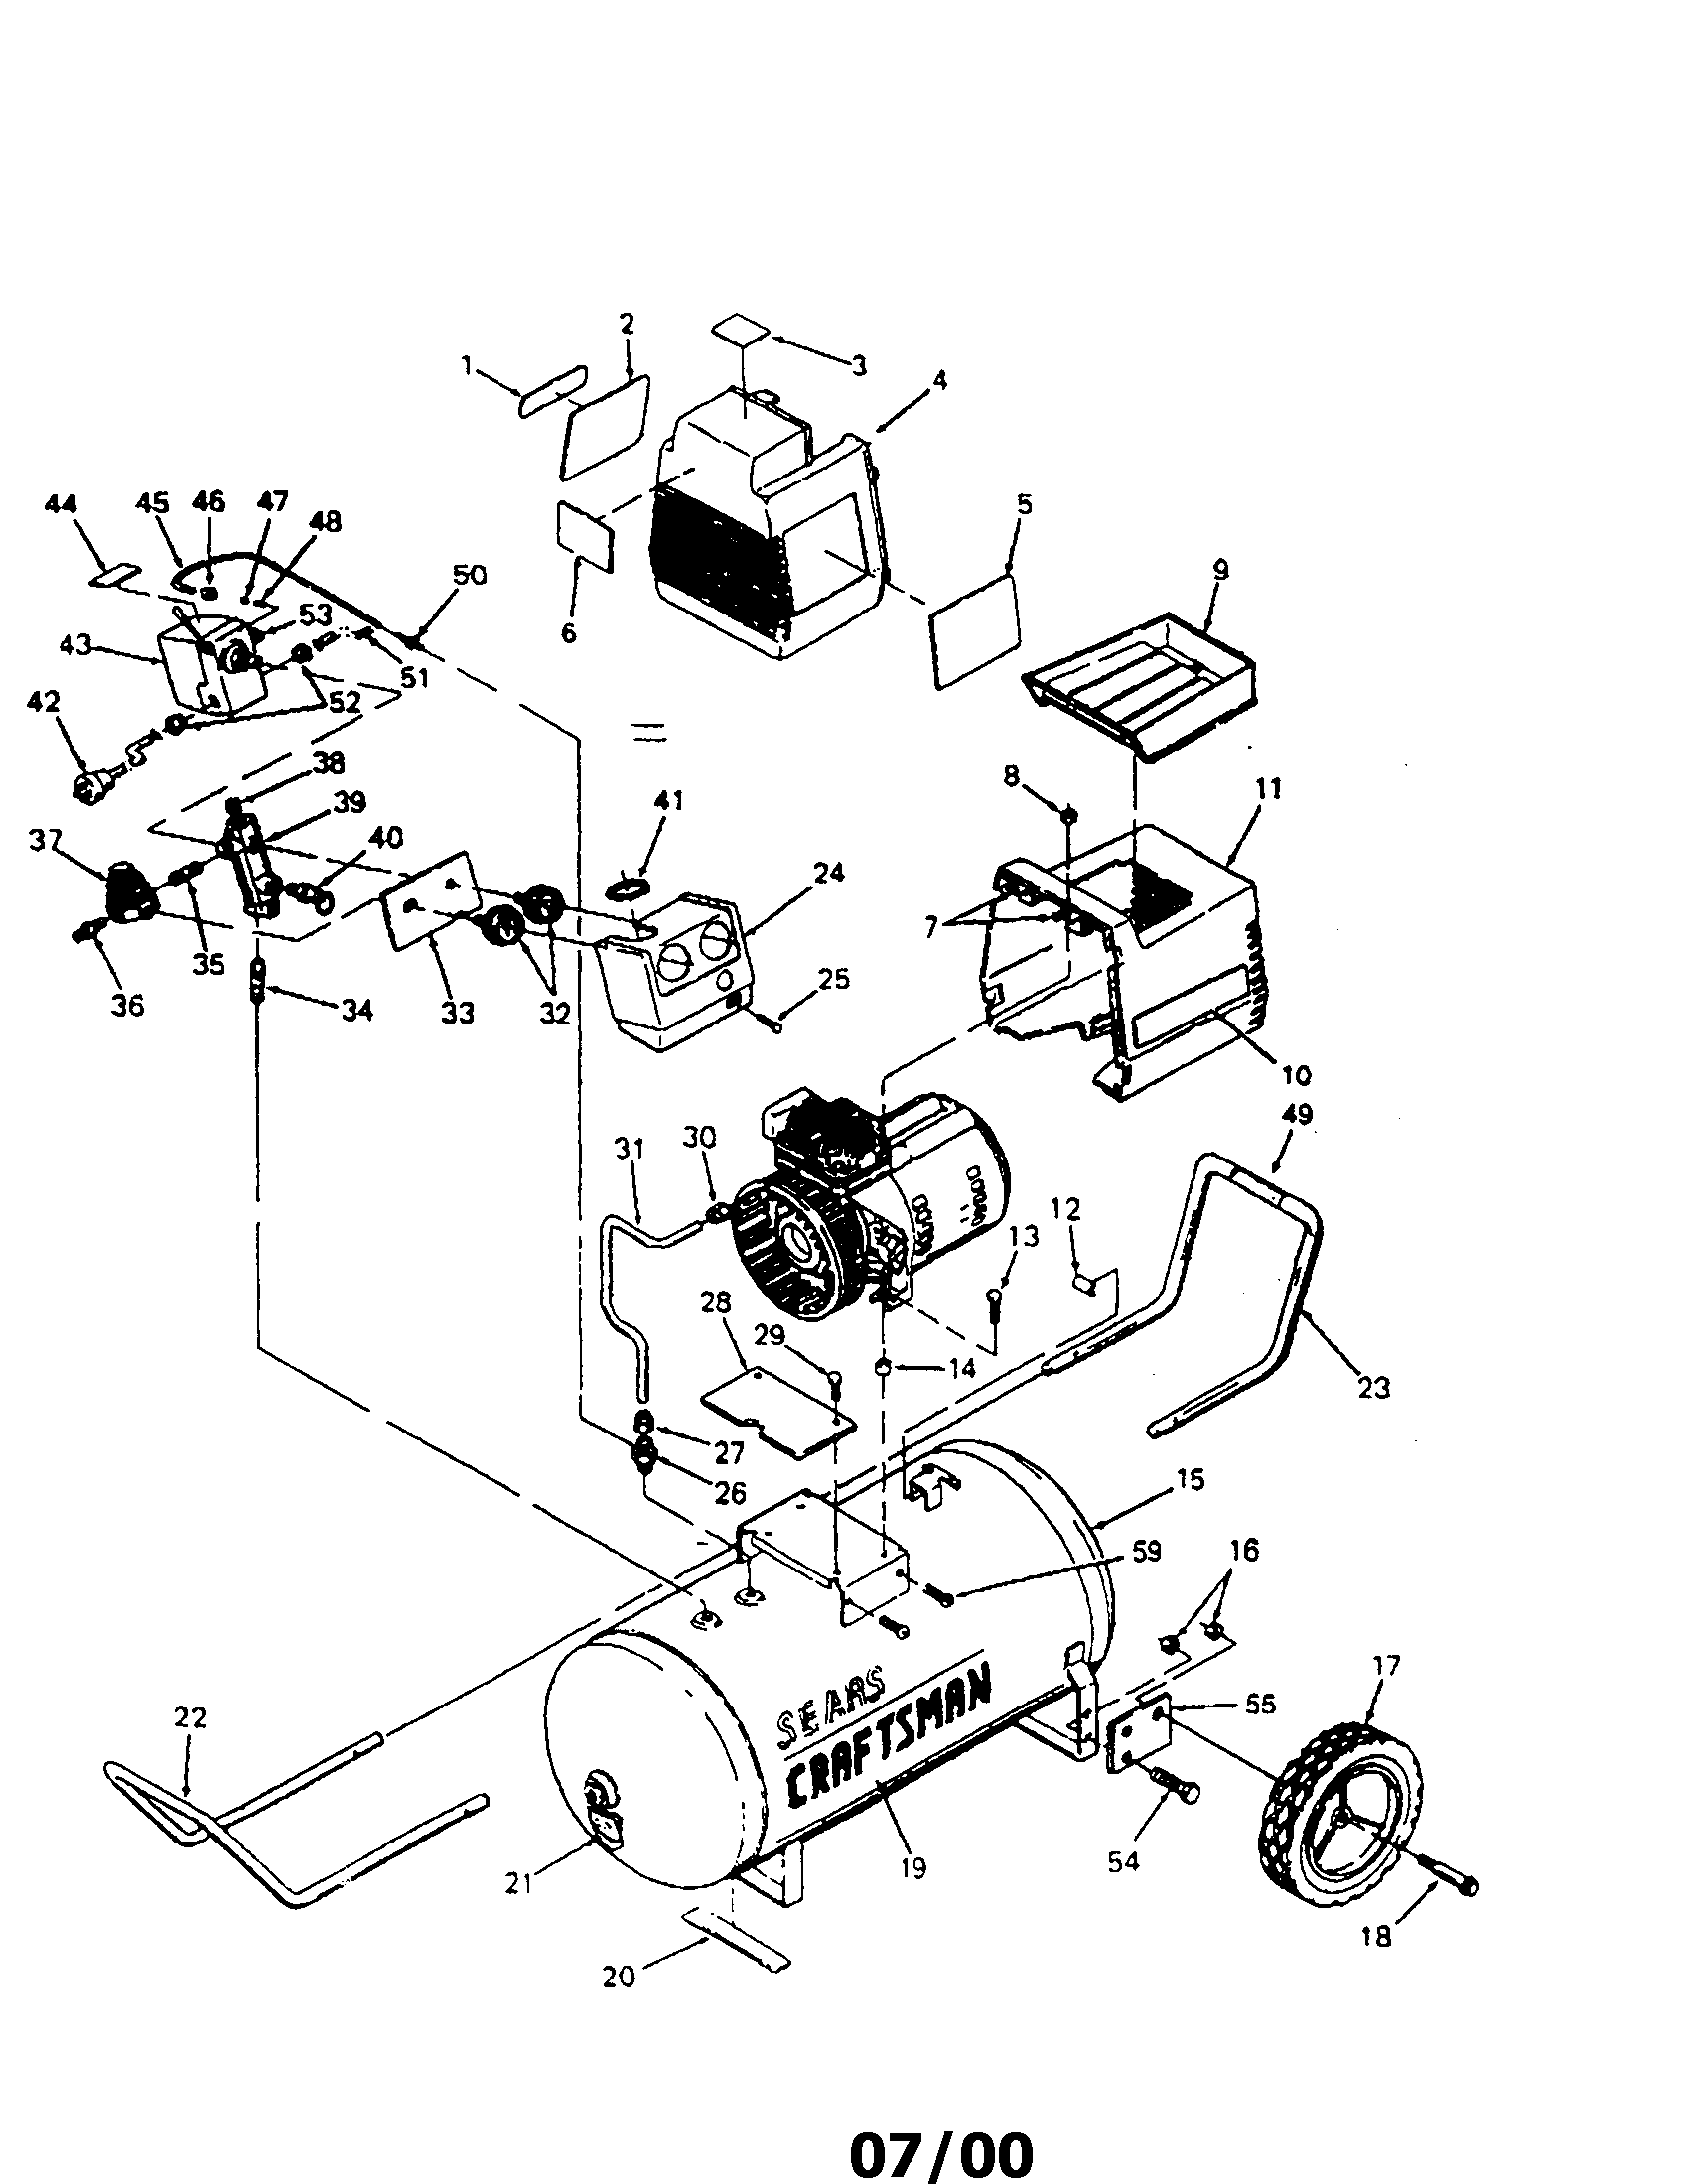 919.153231_craftsman_compressor_parts 919 153231 sears craftsman air compressor parts abac air compressor wiring diagram at bakdesigns.co